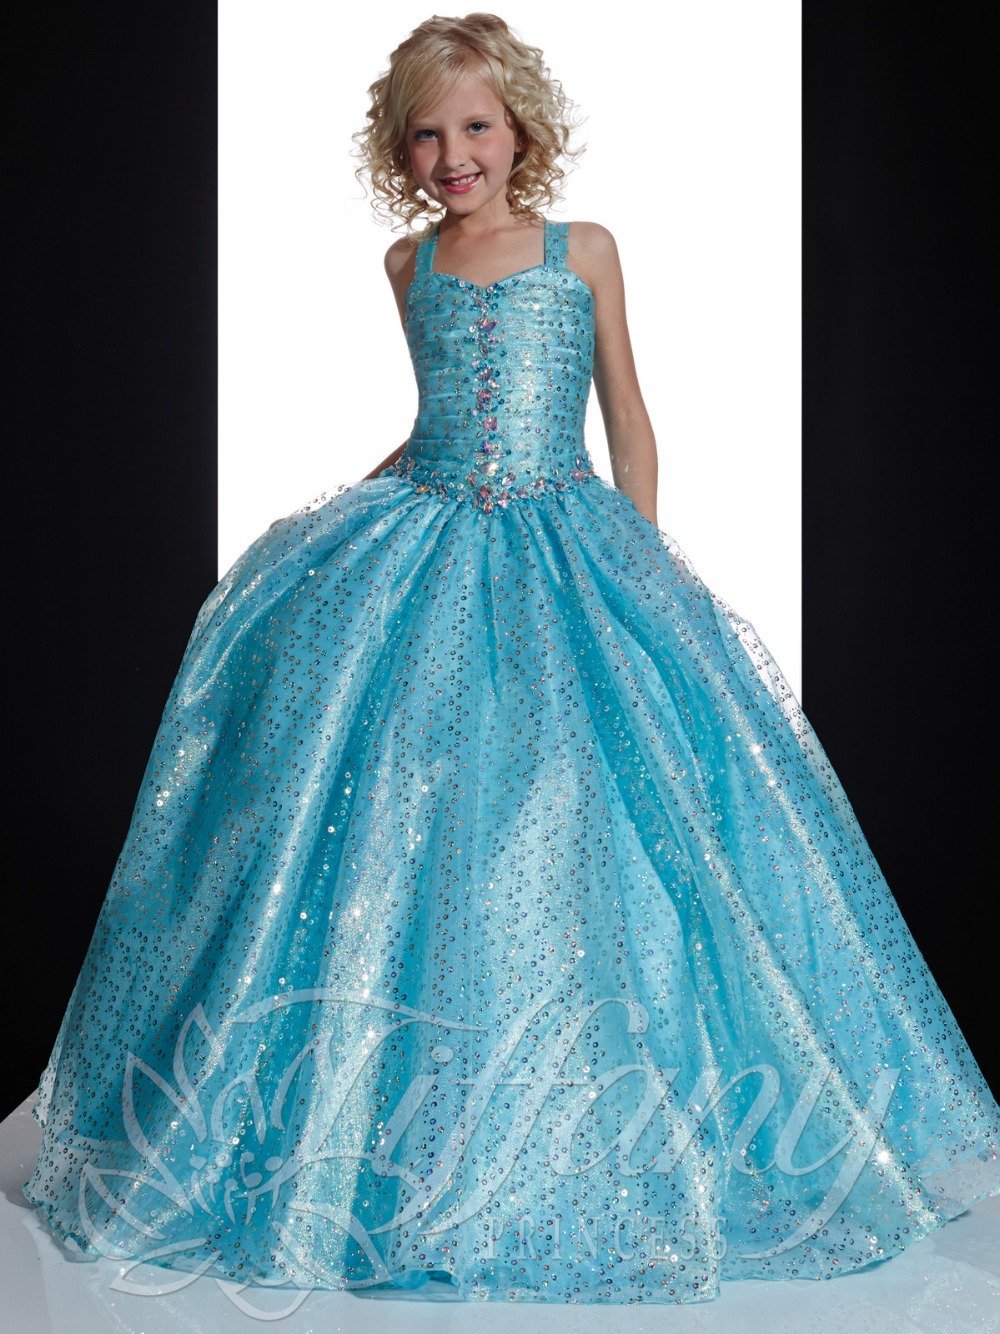 Cute 10 Year Old Dresses | Dress images